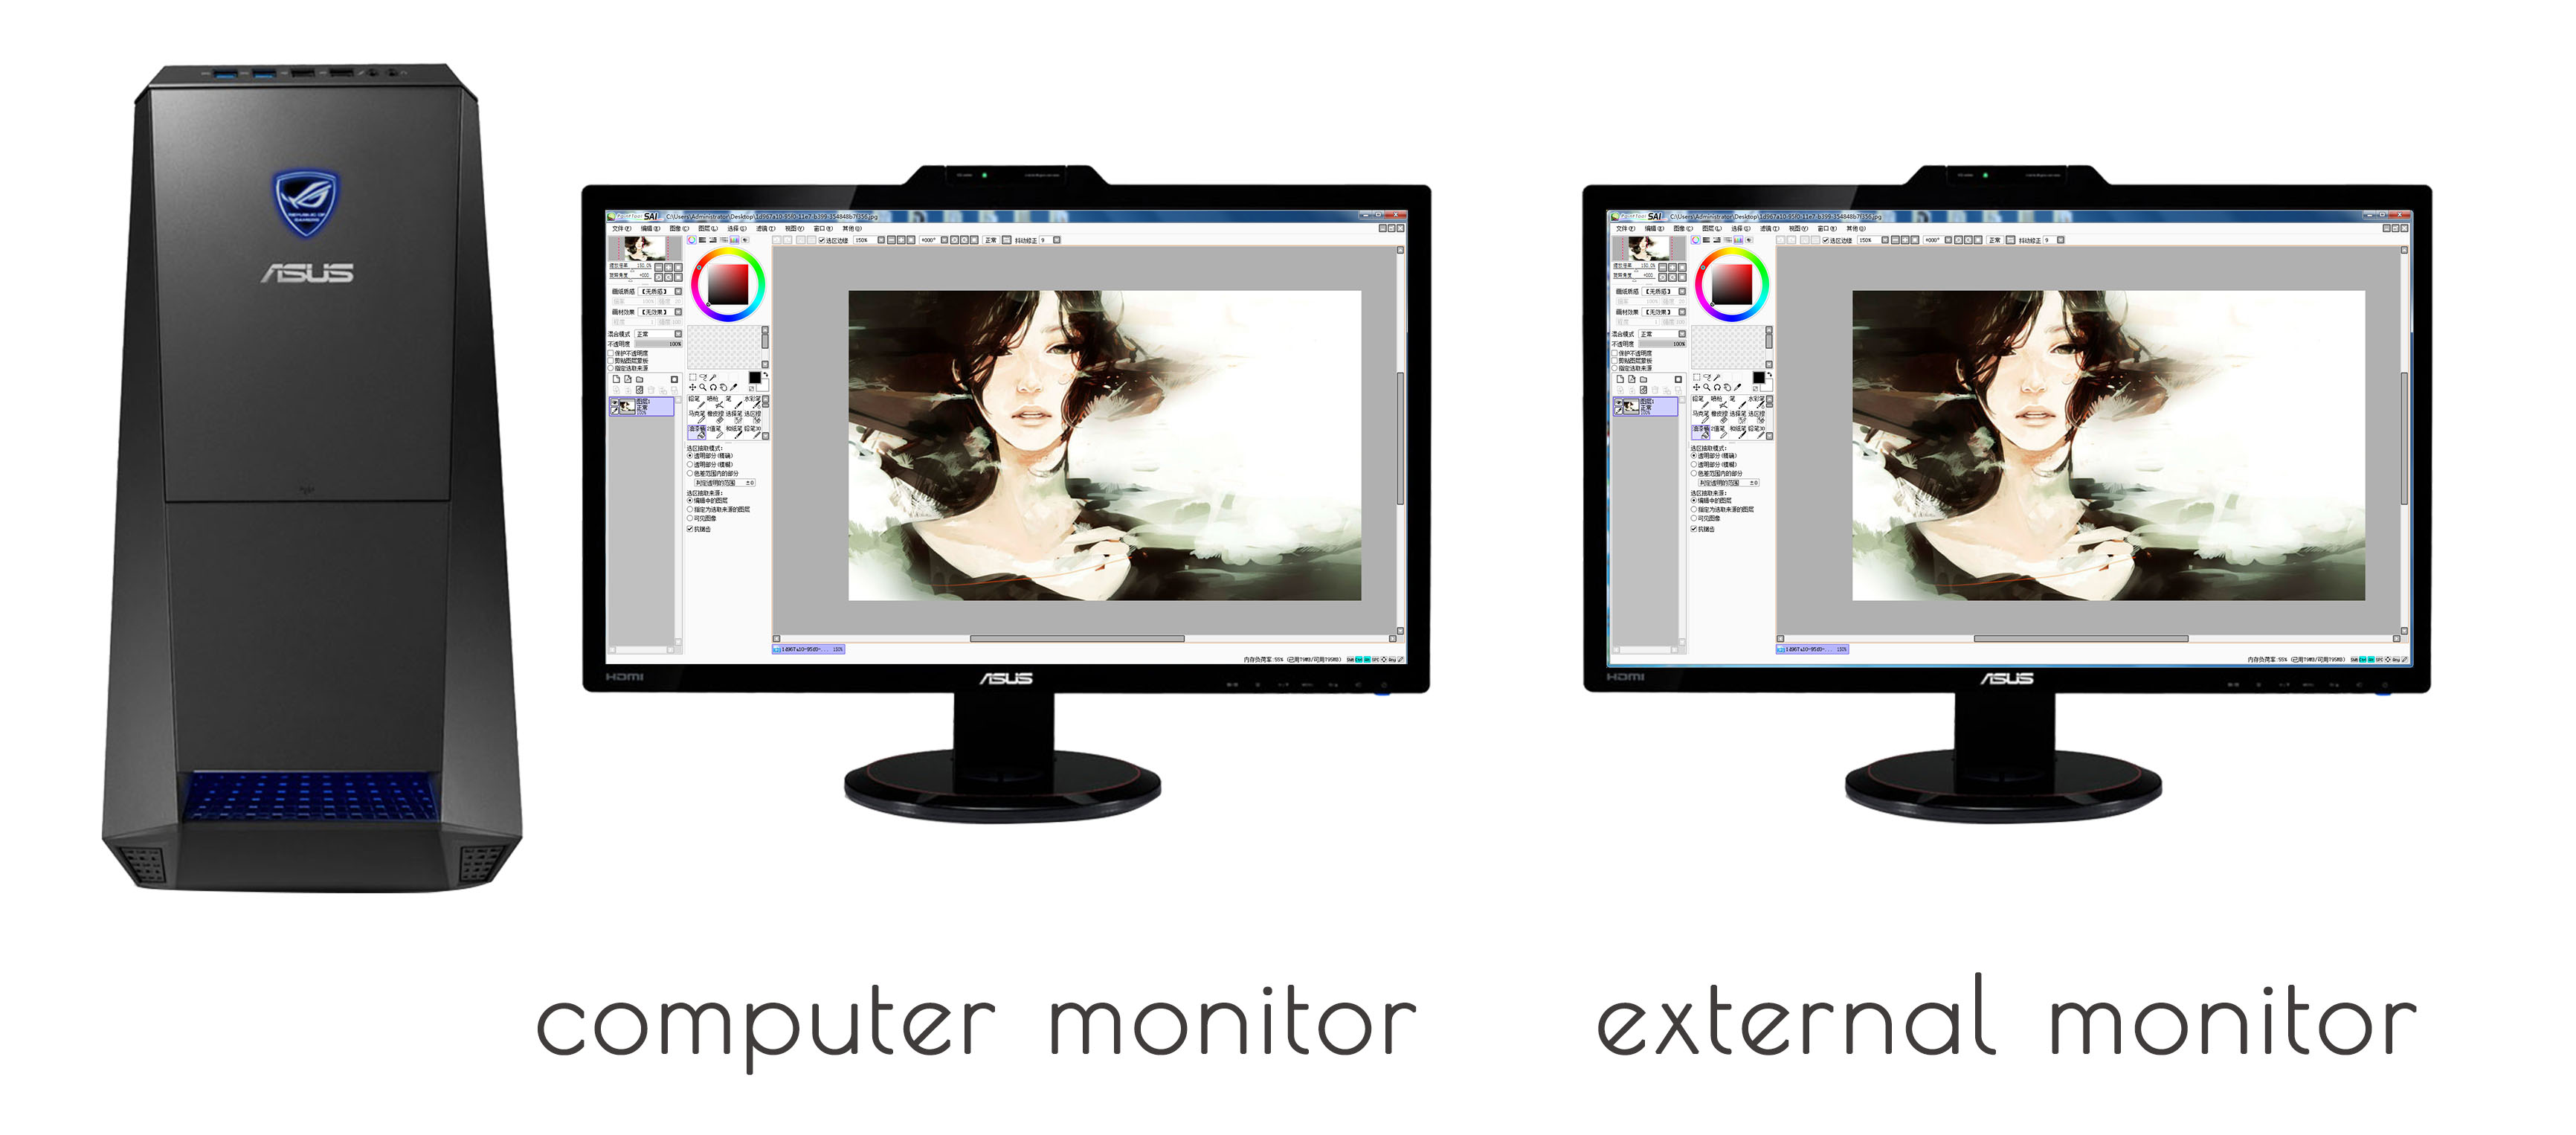 Duplicate-desktop: two monitors show the same image